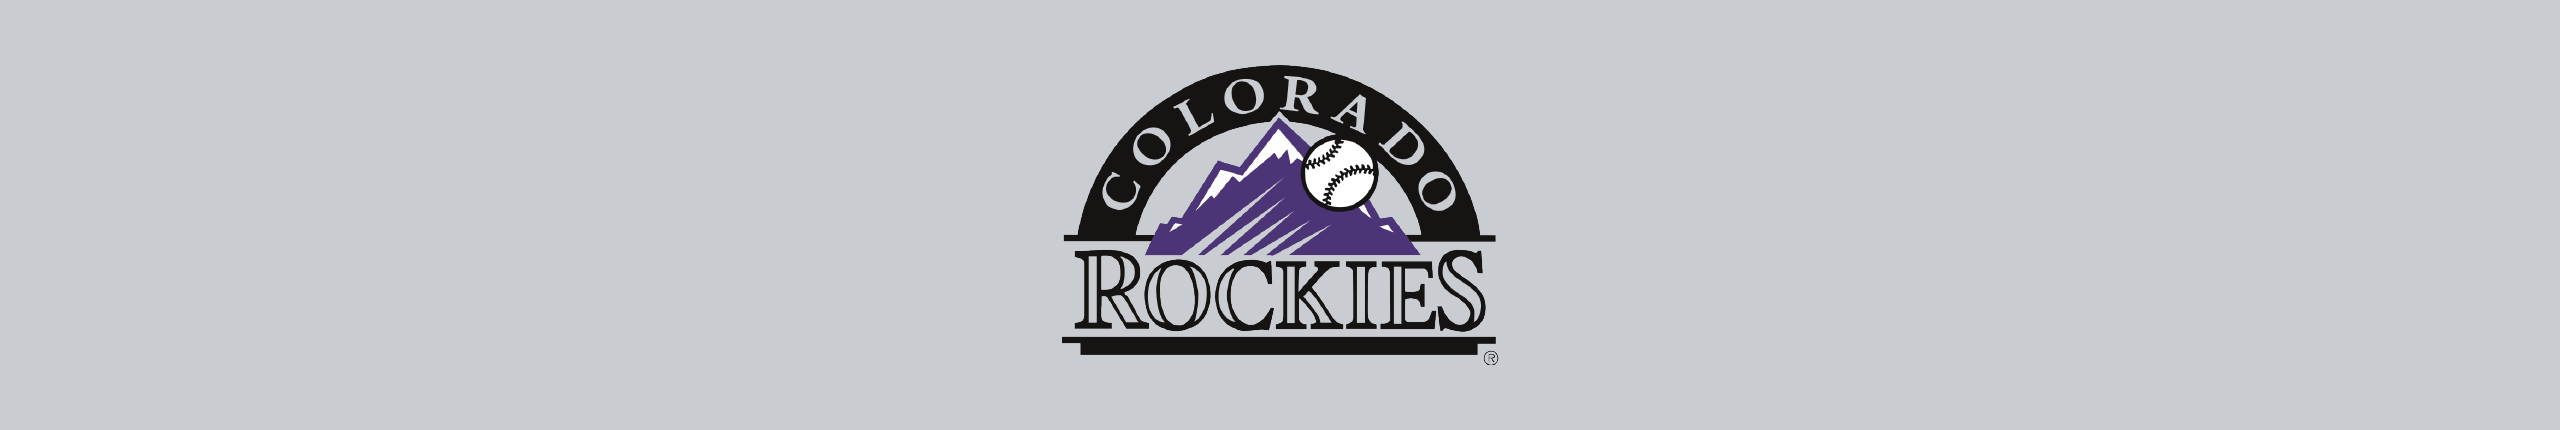 Fan Shop Mlb Baseball Colorado Rockies Men Cutter